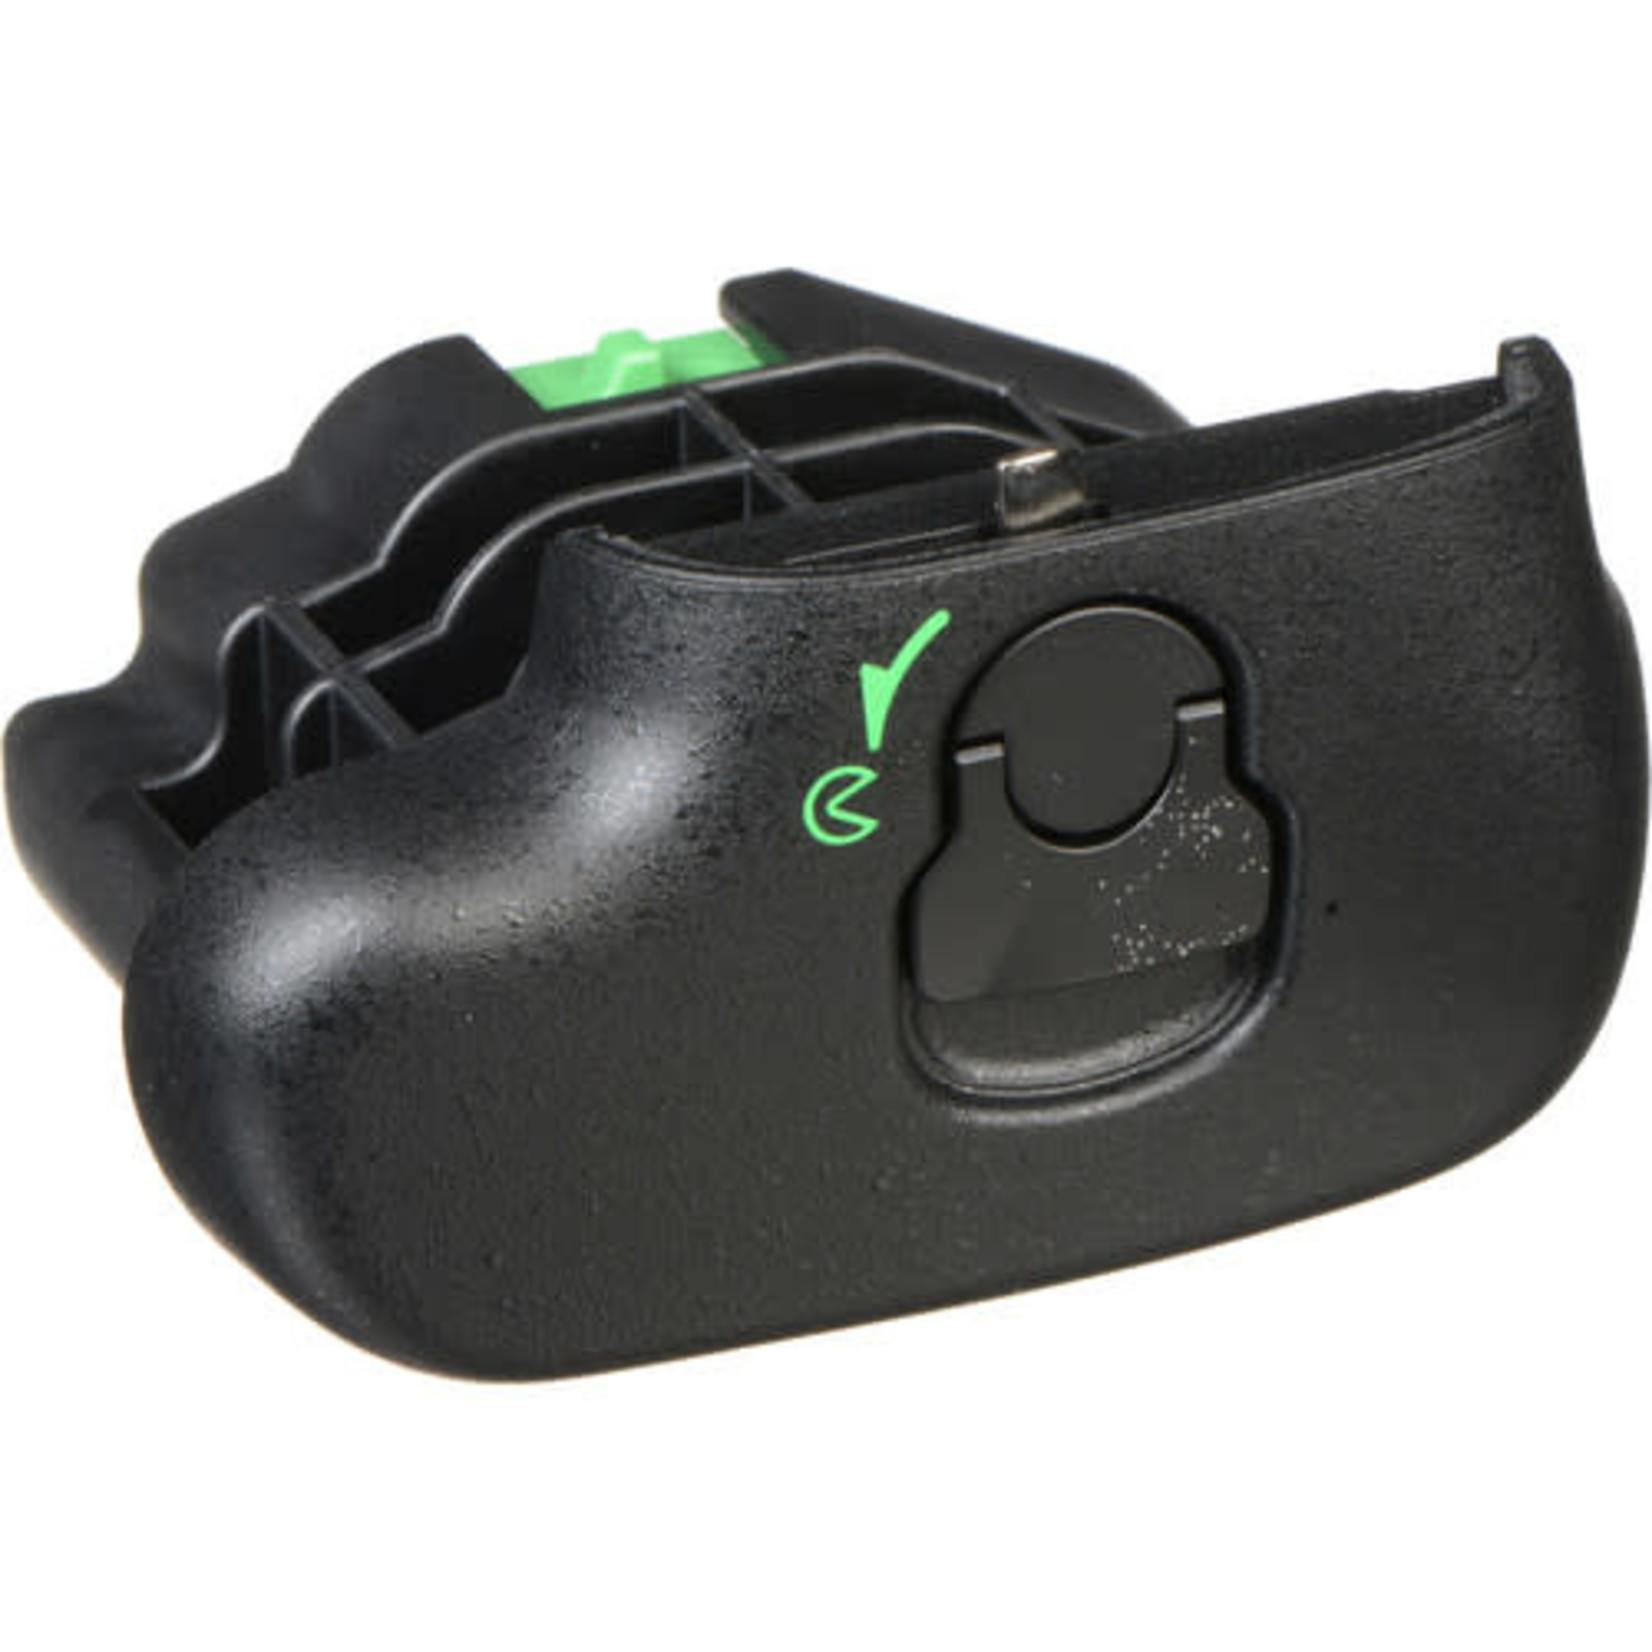 Nikon Nikon BL-5 Battery Chamber Cover for MB-D12 Battery Pack